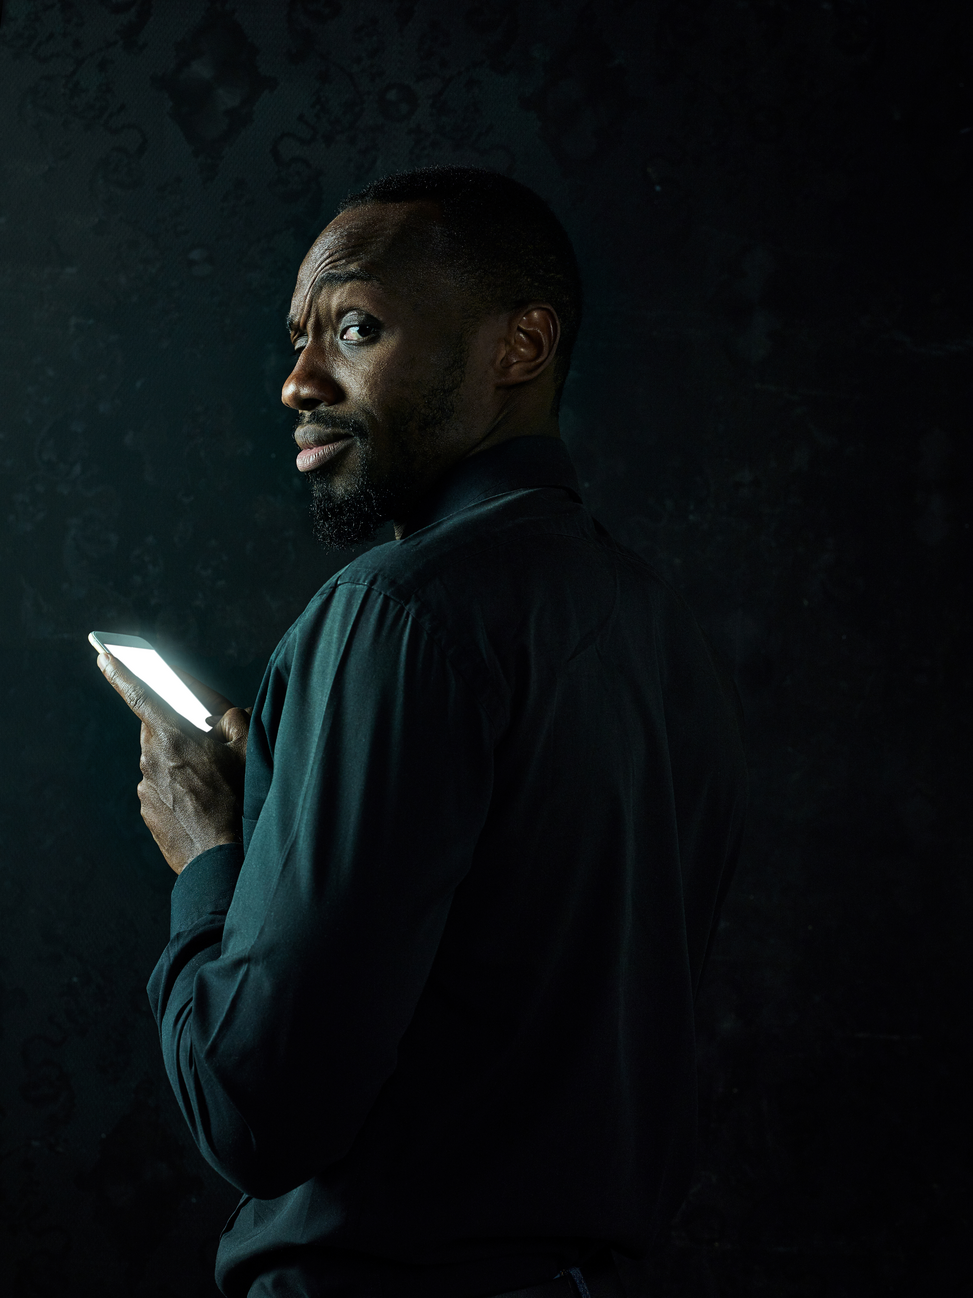 rsz_young-serious-black-african-man-thinking-while-talking-mobile-phone-against-black-studio-background